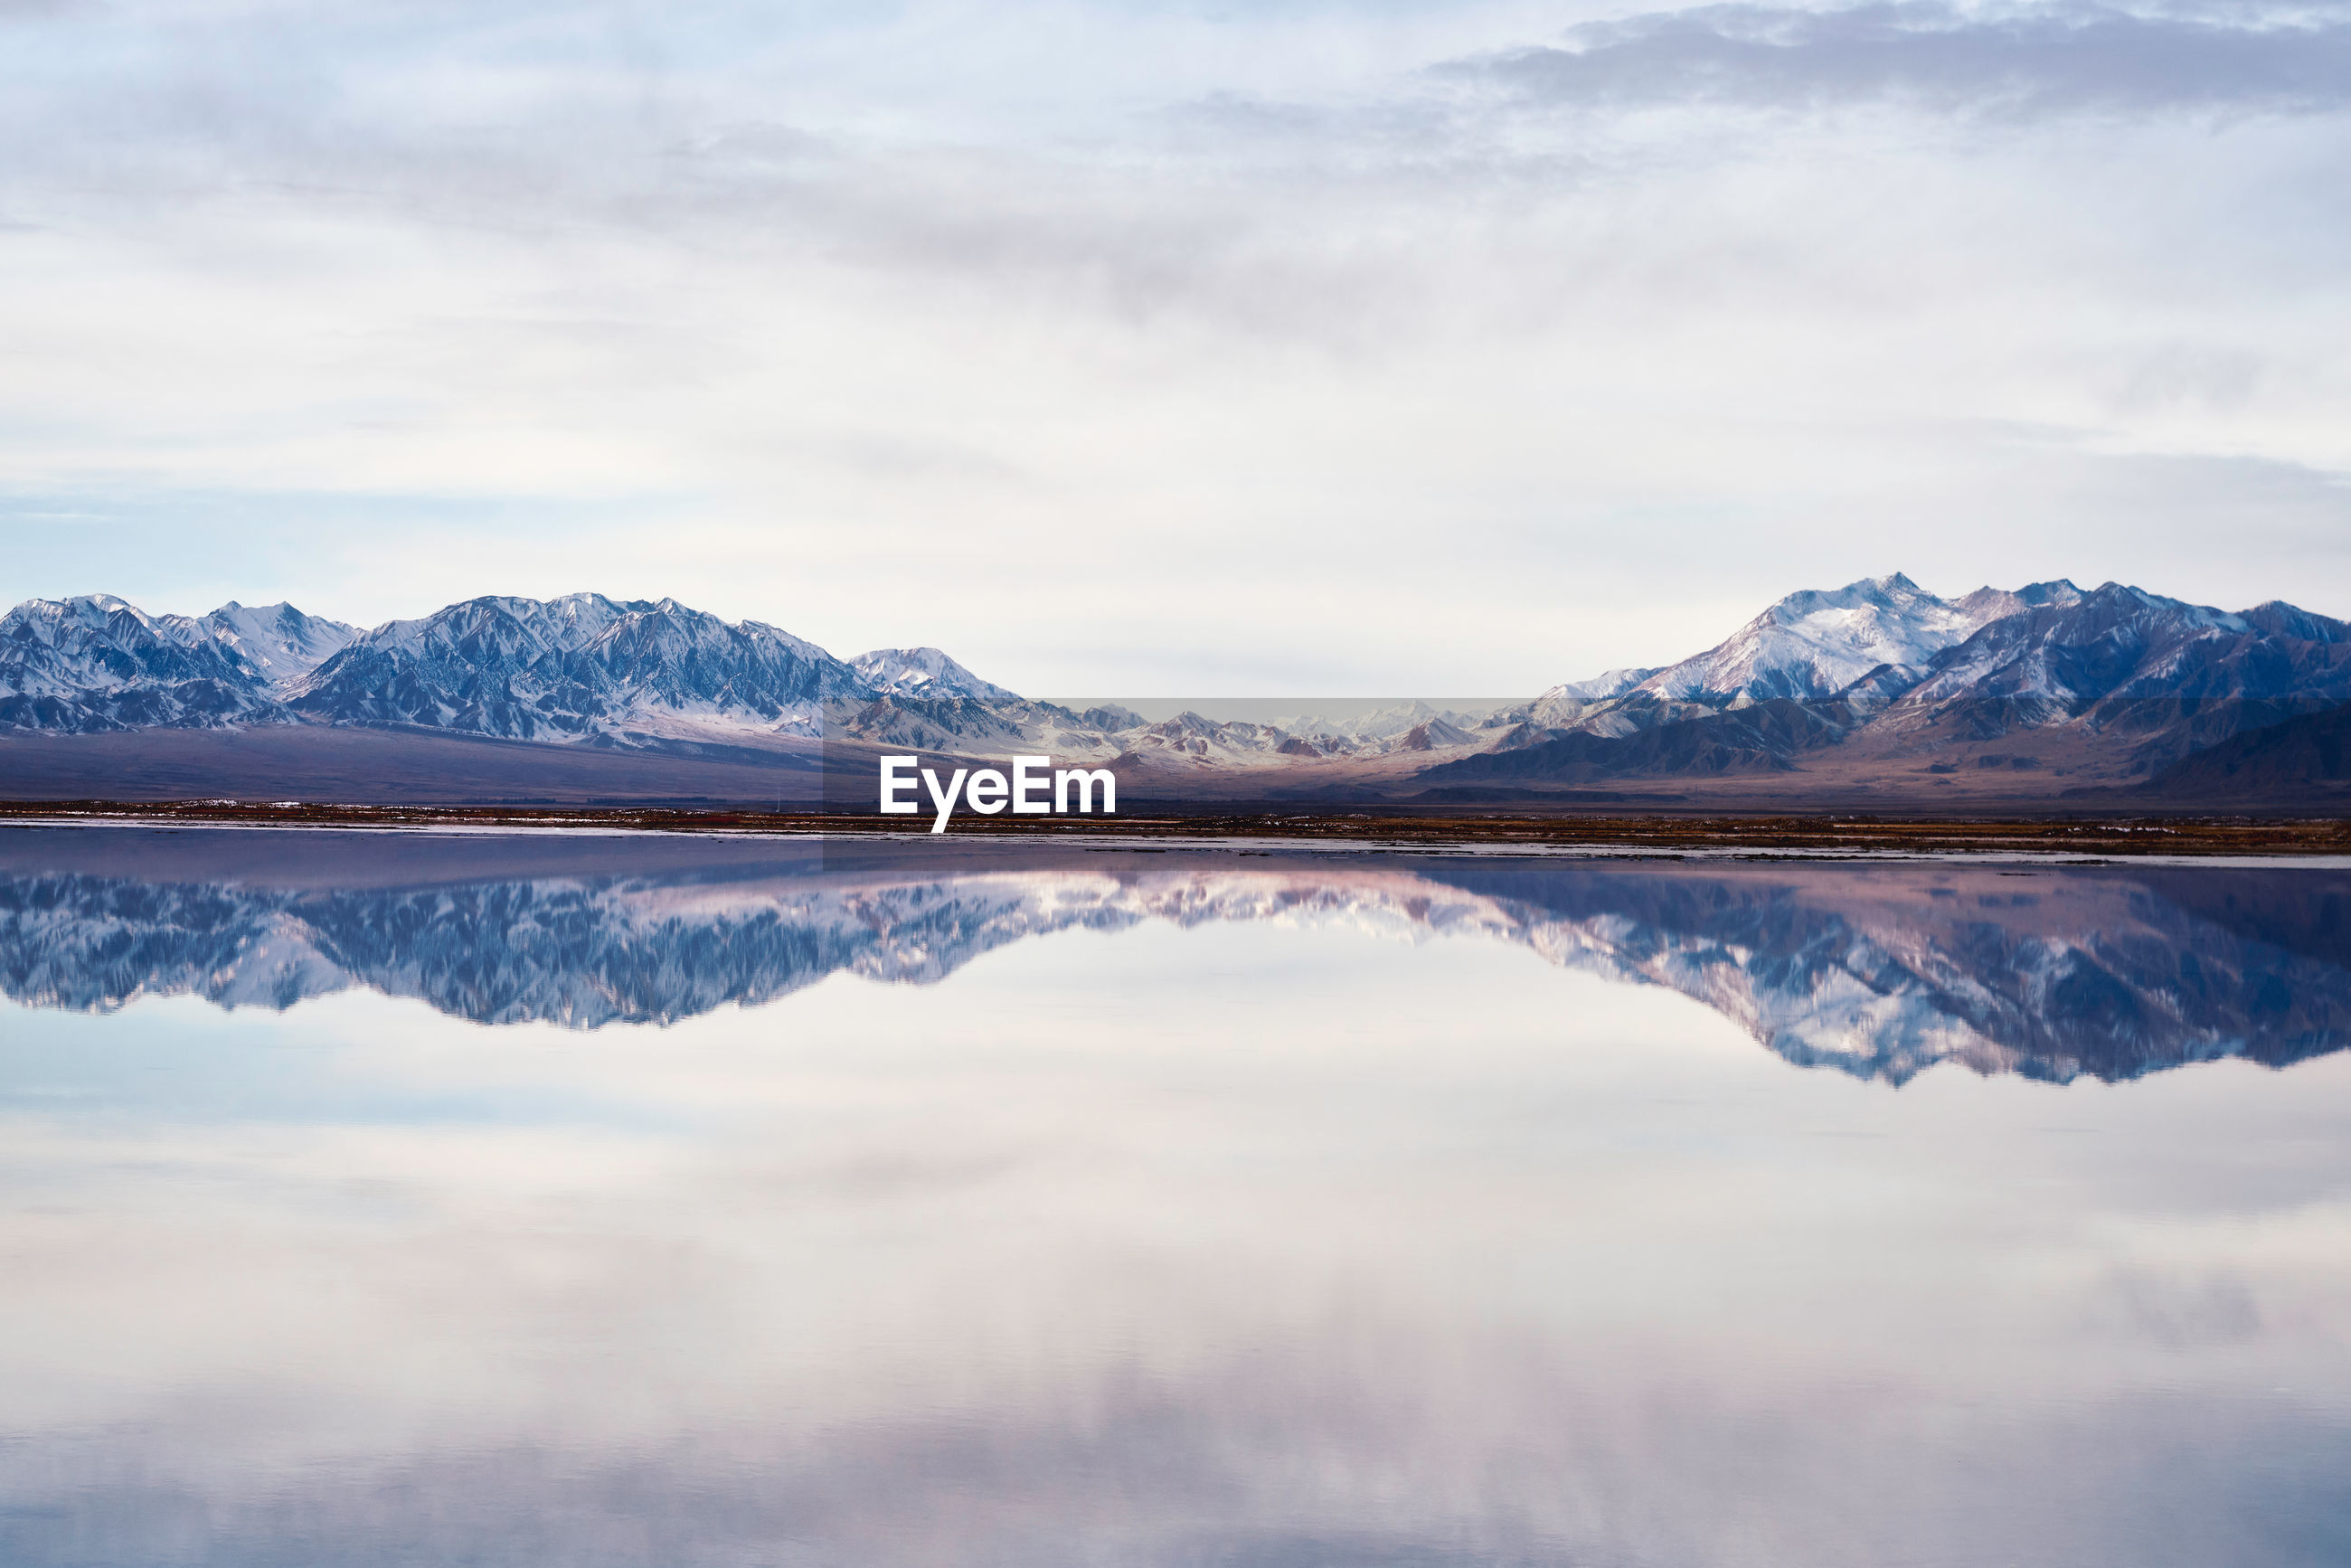 Scenic view of calm lake by snowcapped mountains against cloudy sky